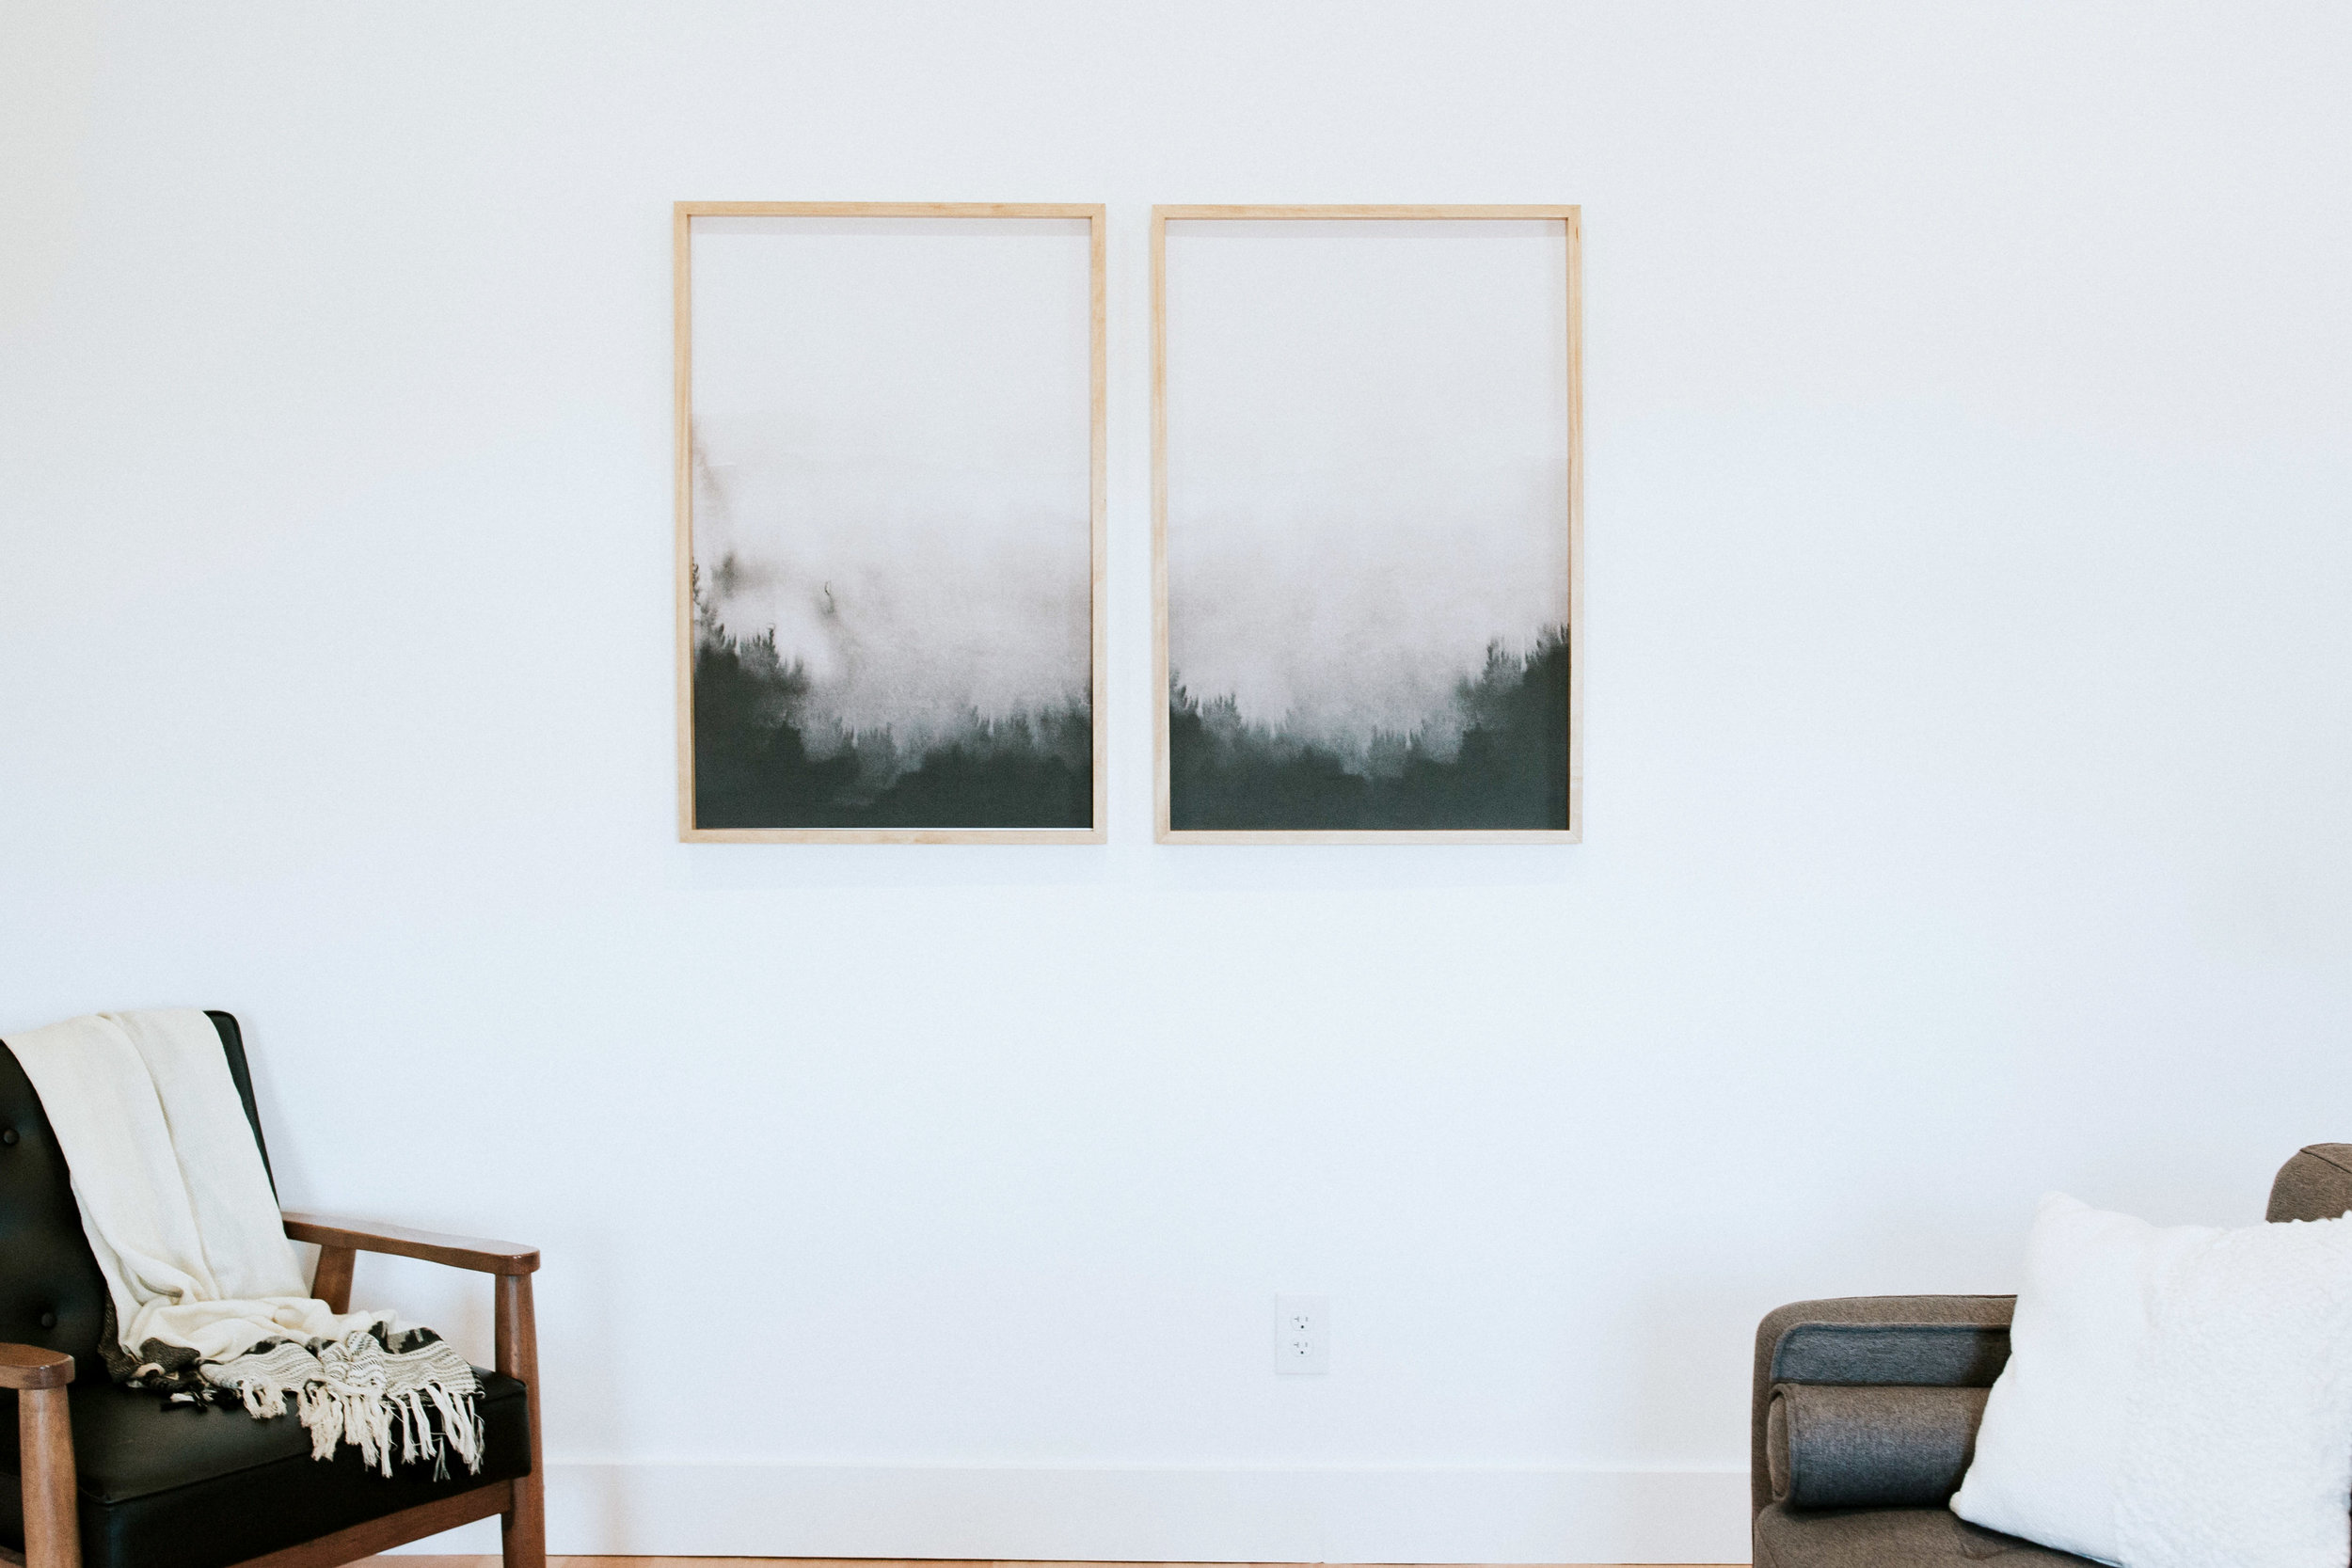 DIY modern frame and abstract art - how to make your own frame